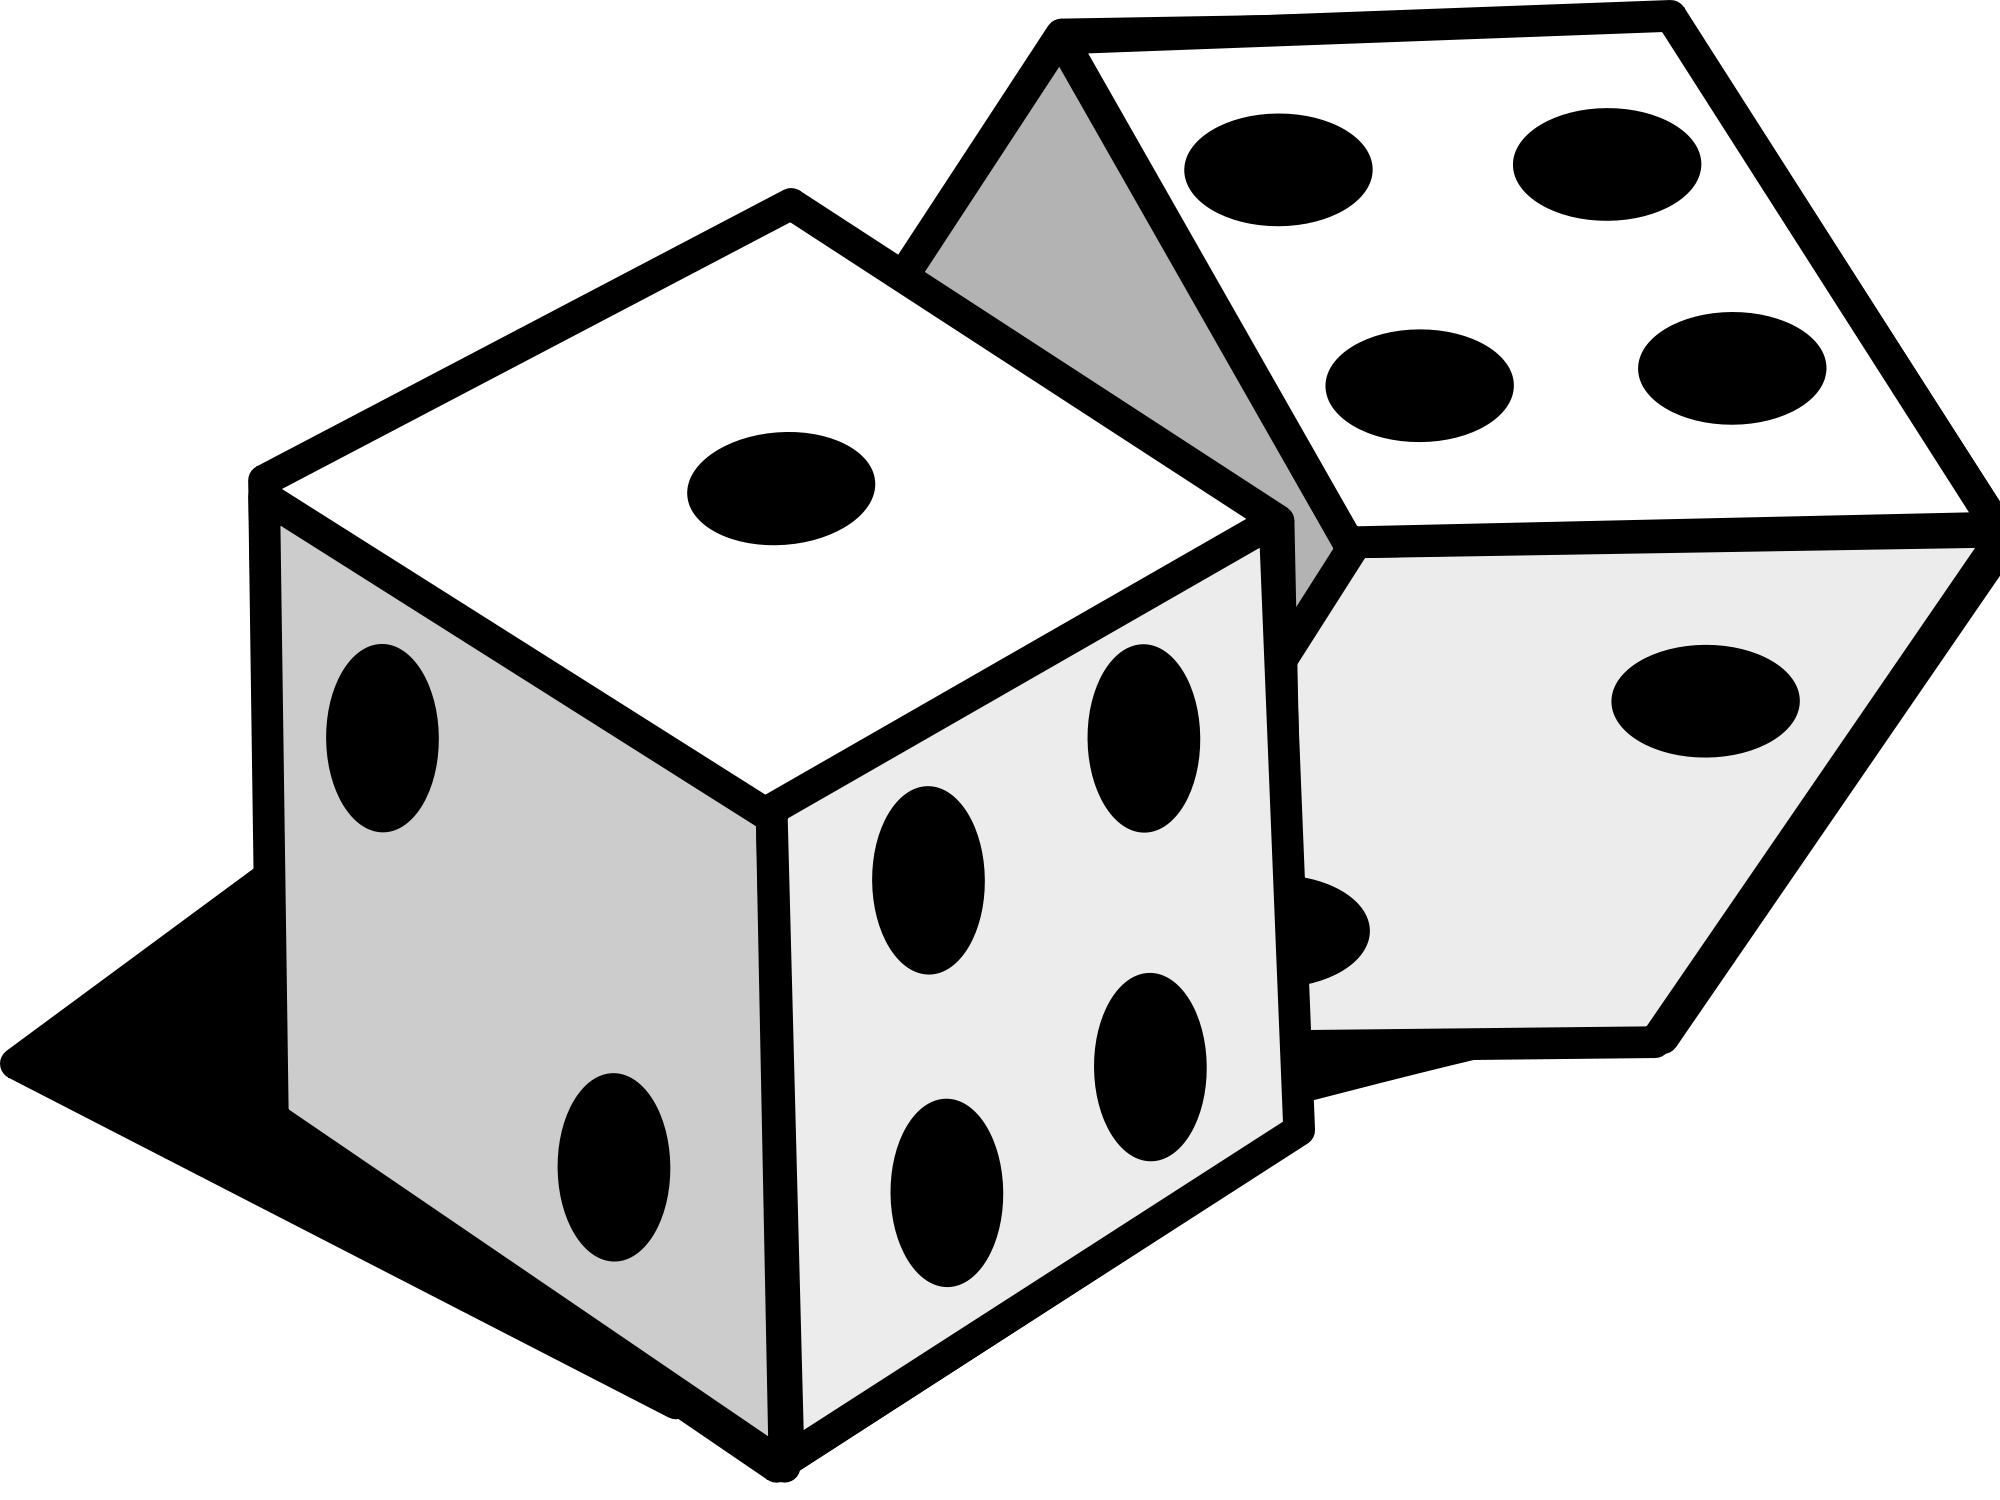 svg freeuse download Dice svg. Probability theory mathematics and